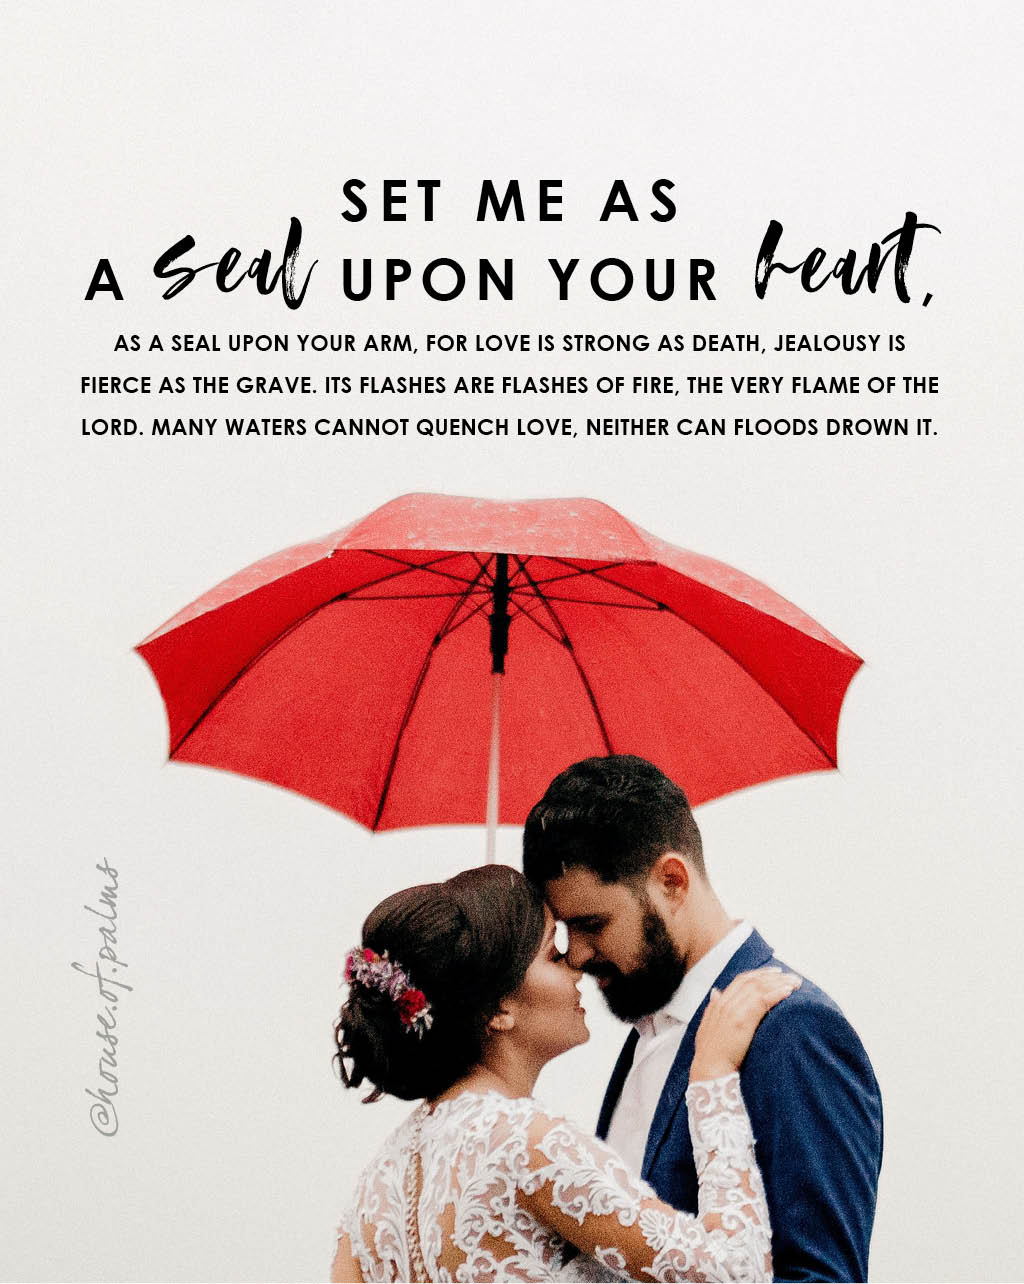 set me as a seal upon your heart - marriage and love verse